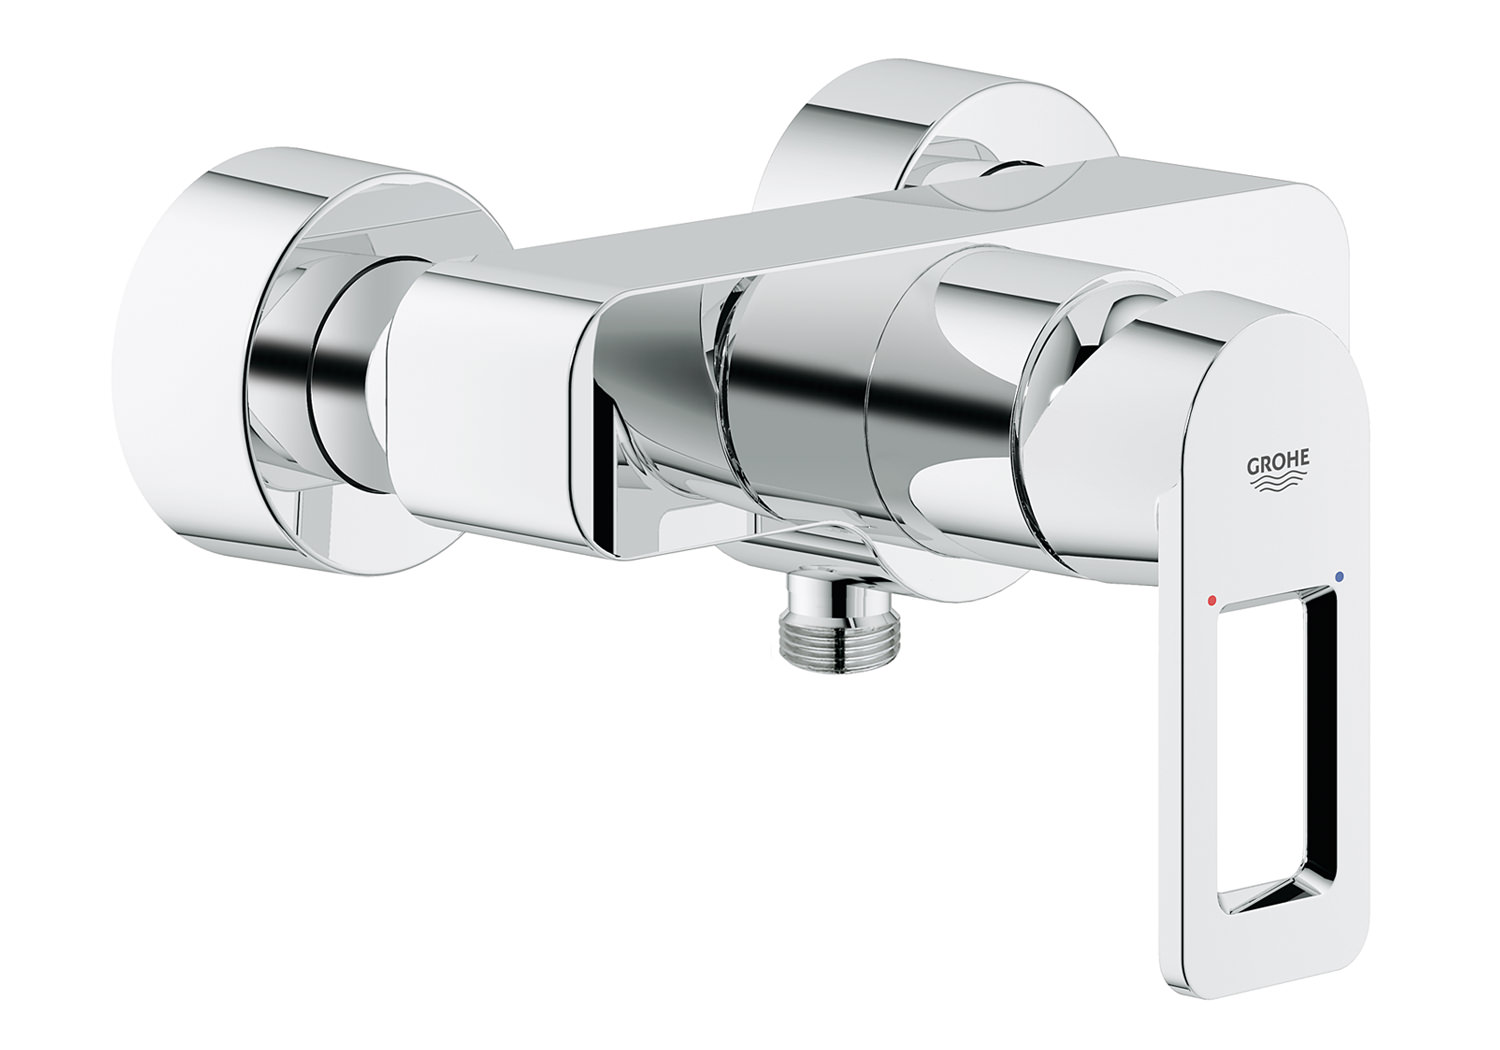 grohe quadra wall mounted exposed shower mixer valve chrome. Black Bedroom Furniture Sets. Home Design Ideas